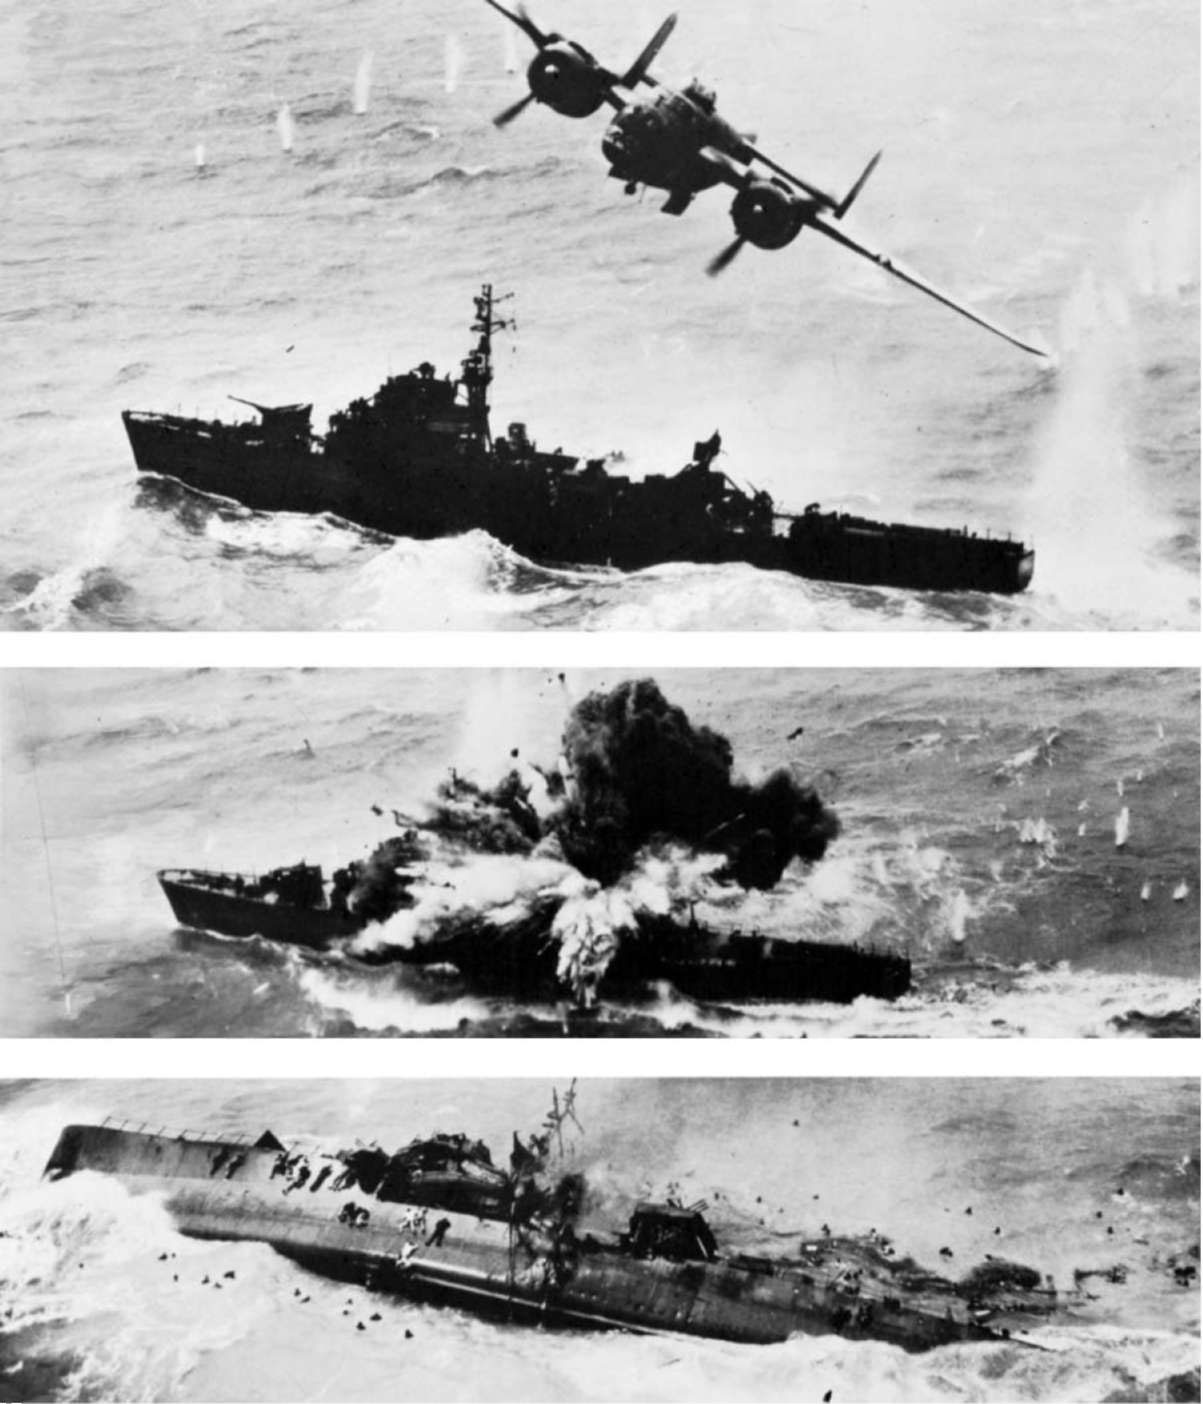 USAAF B-25 sinks Japanese destroyer Amatsukaze off the coast of Xiamen, China, 6 April 1945 - Imgur